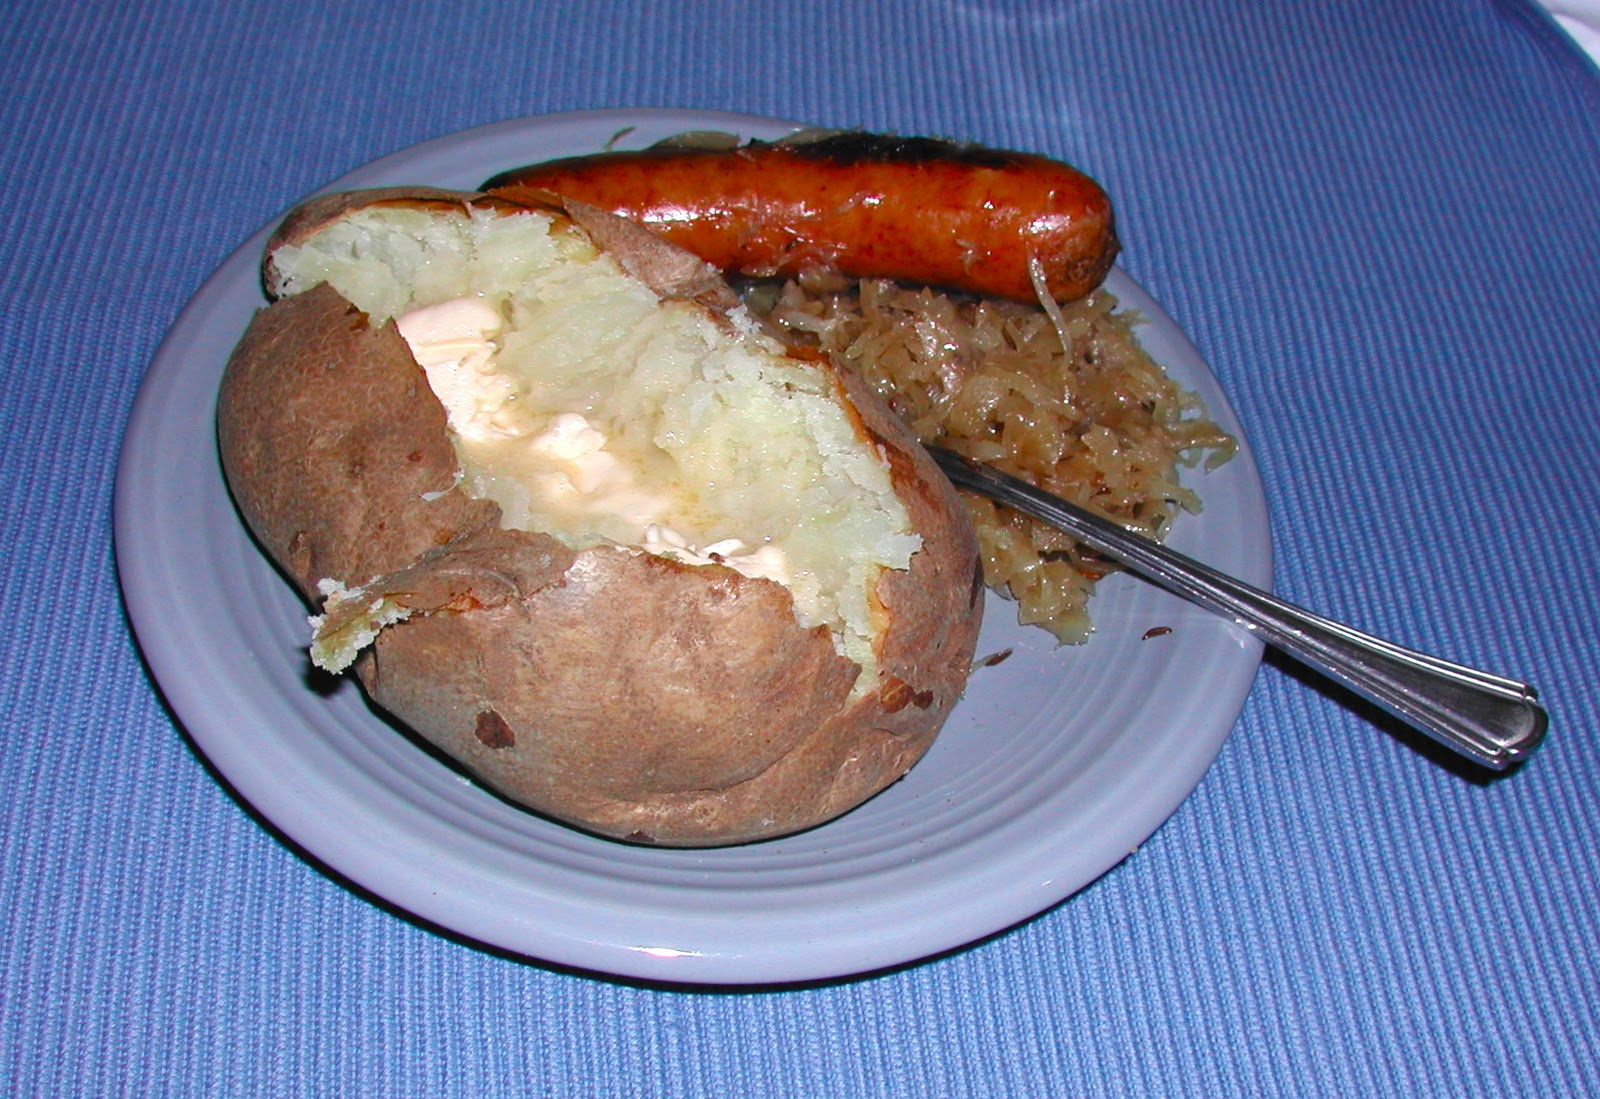 The Iowa Housewife: Bratwurst & Sauerkraut Skillet Supper